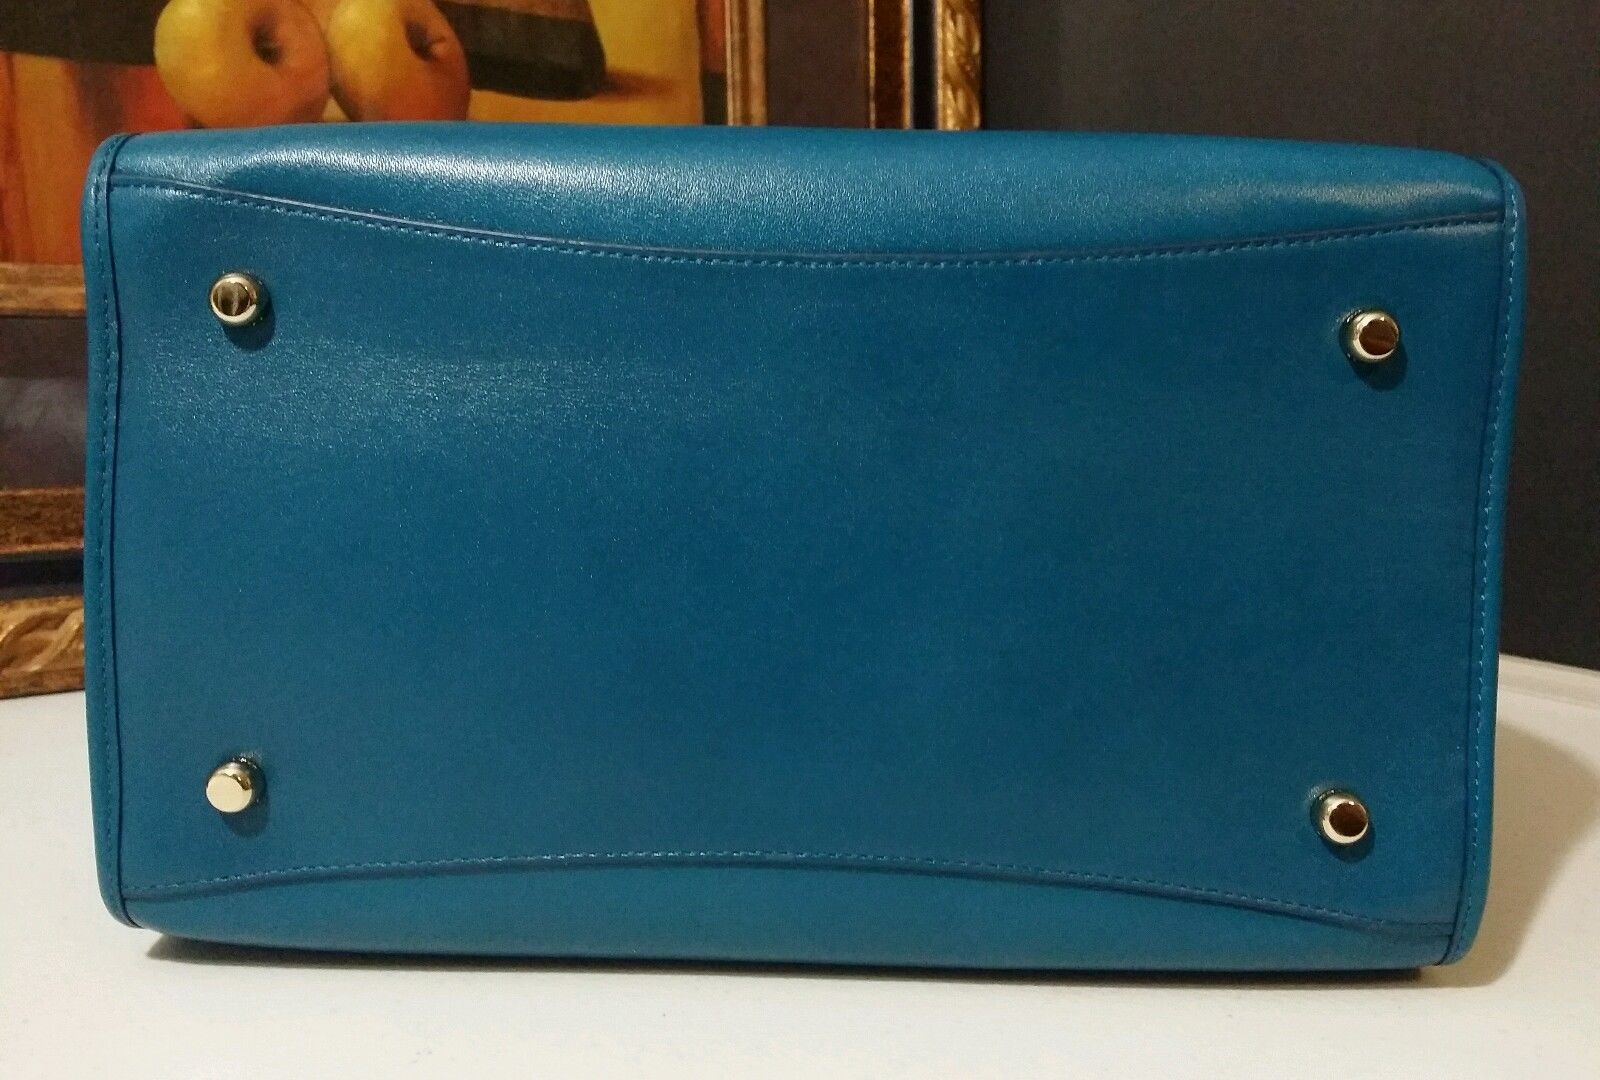 NWT COACH Smooth Leather Crosby Carryall 33545 LITEA Light Gold/Teal MSRP $398